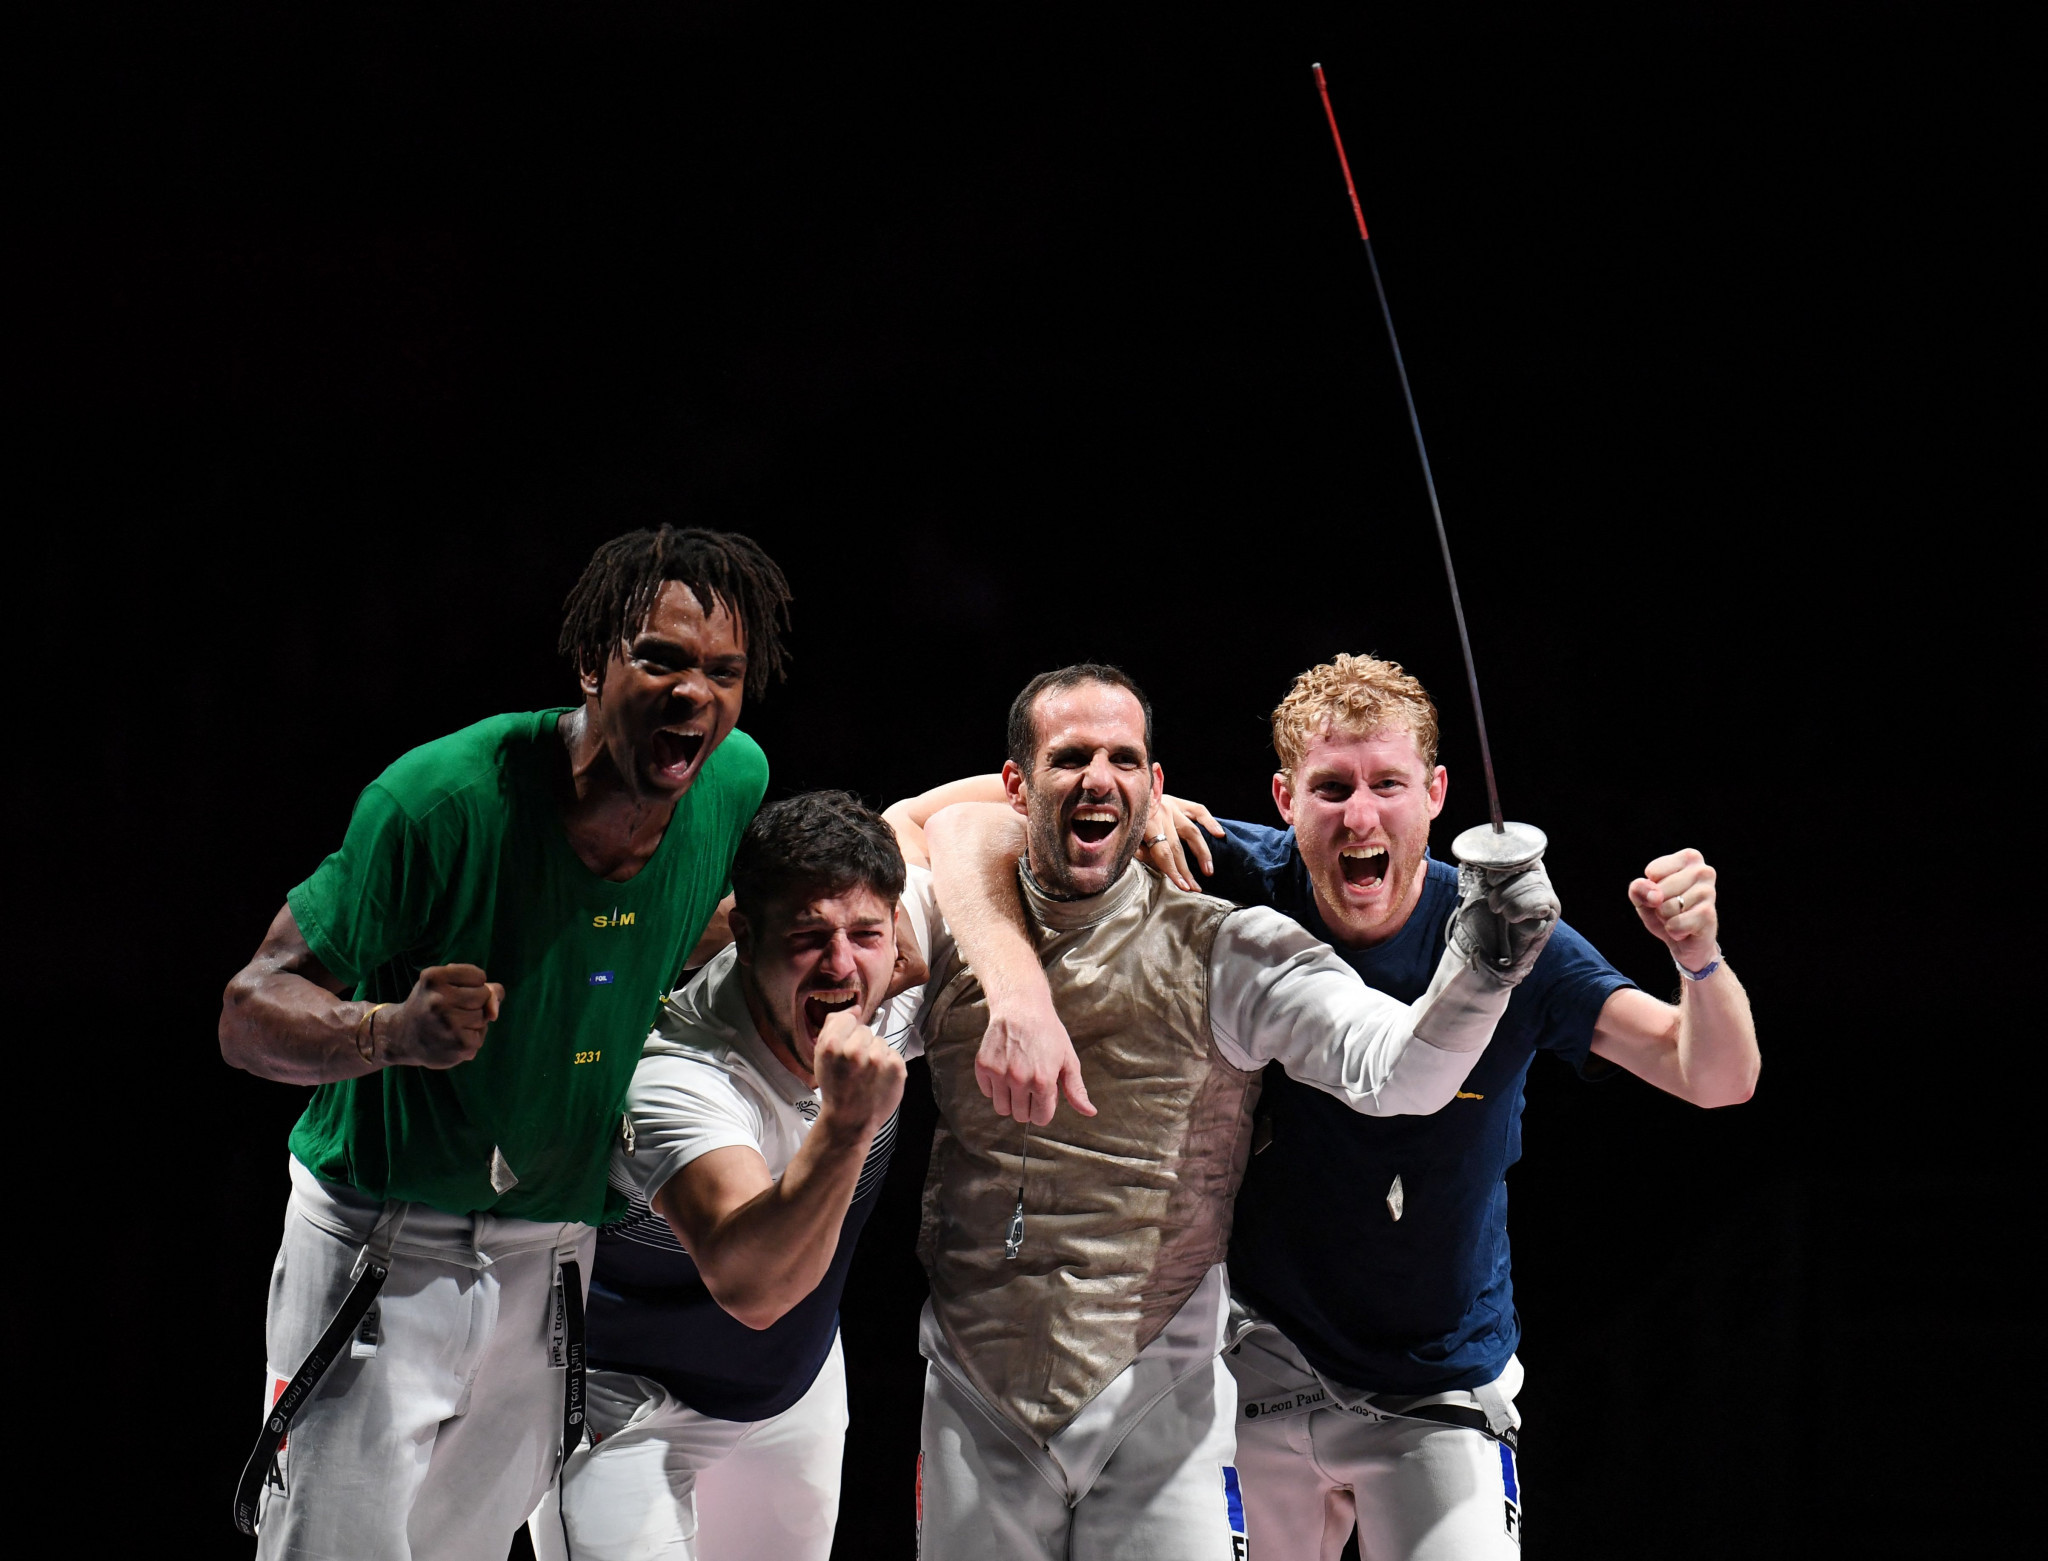 France complete revenge mission over ROC to become record winners of Olympic men's team foil